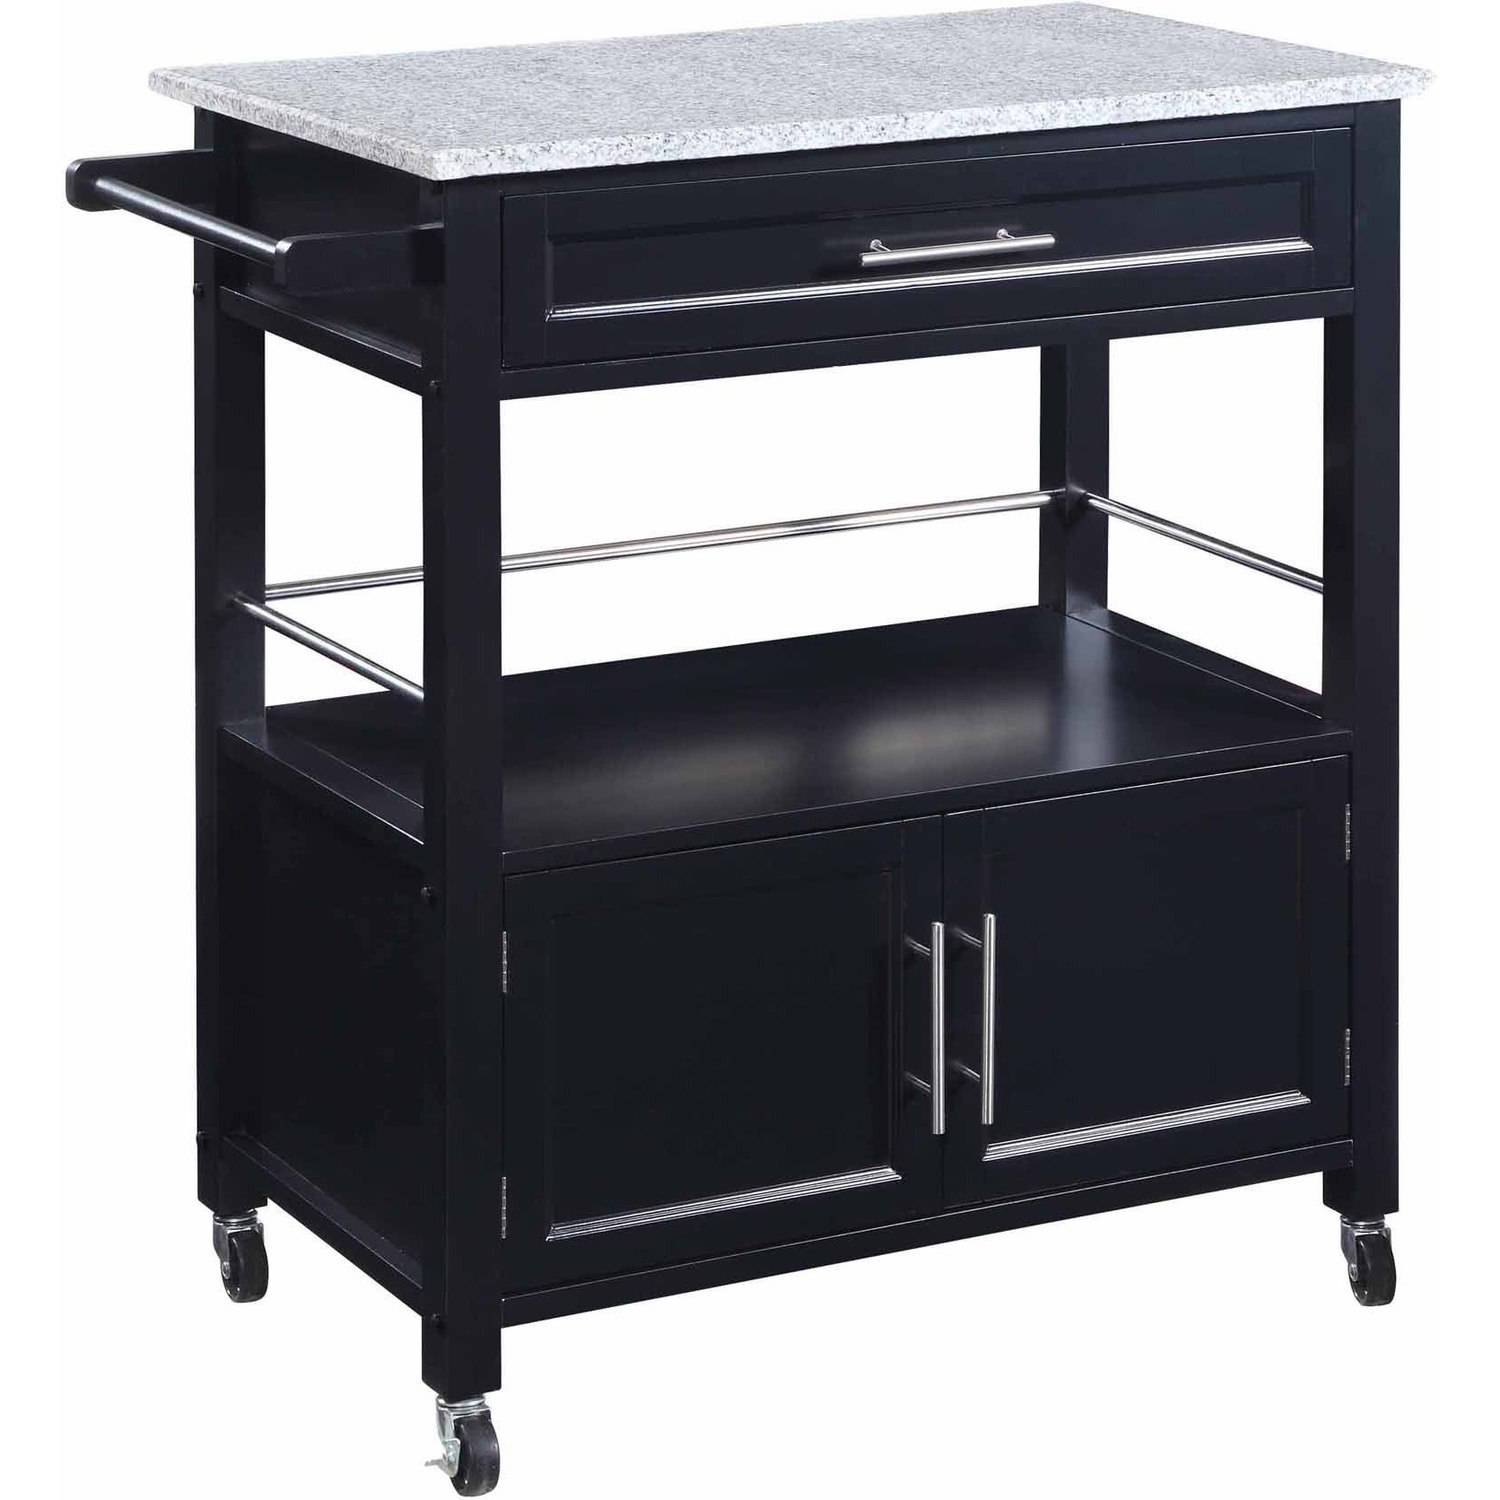 Granite Top Kitchen Trolley Linon Kitchen Island Granite Top Best Kitchen Island 2017